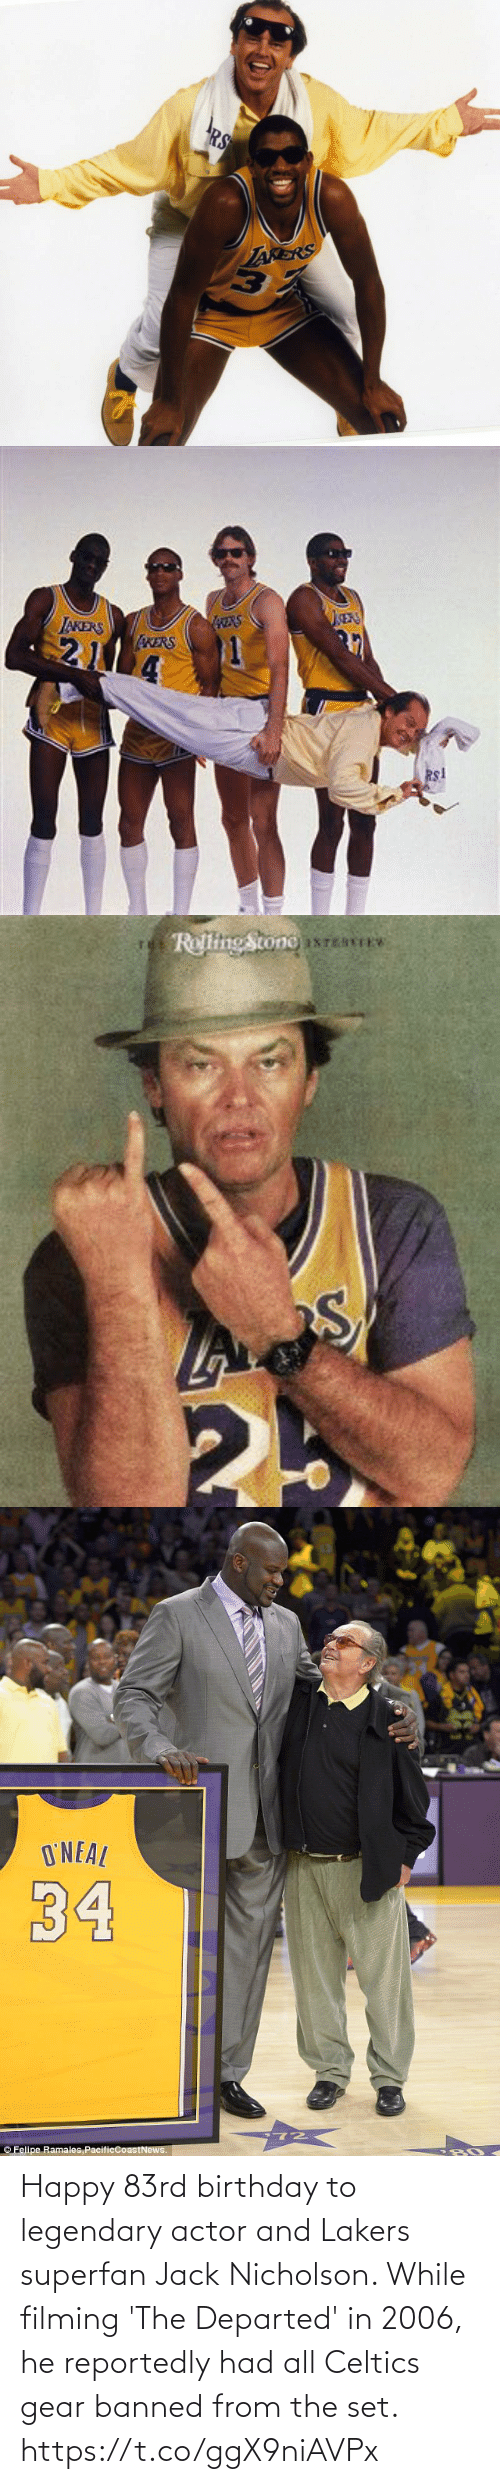 Birthday, Jack Nicholson, and Los Angeles Lakers: Happy 83rd birthday to legendary actor and Lakers superfan Jack Nicholson.   While filming 'The Departed' in 2006, he reportedly had all Celtics gear banned from the set. https://t.co/ggX9niAVPx